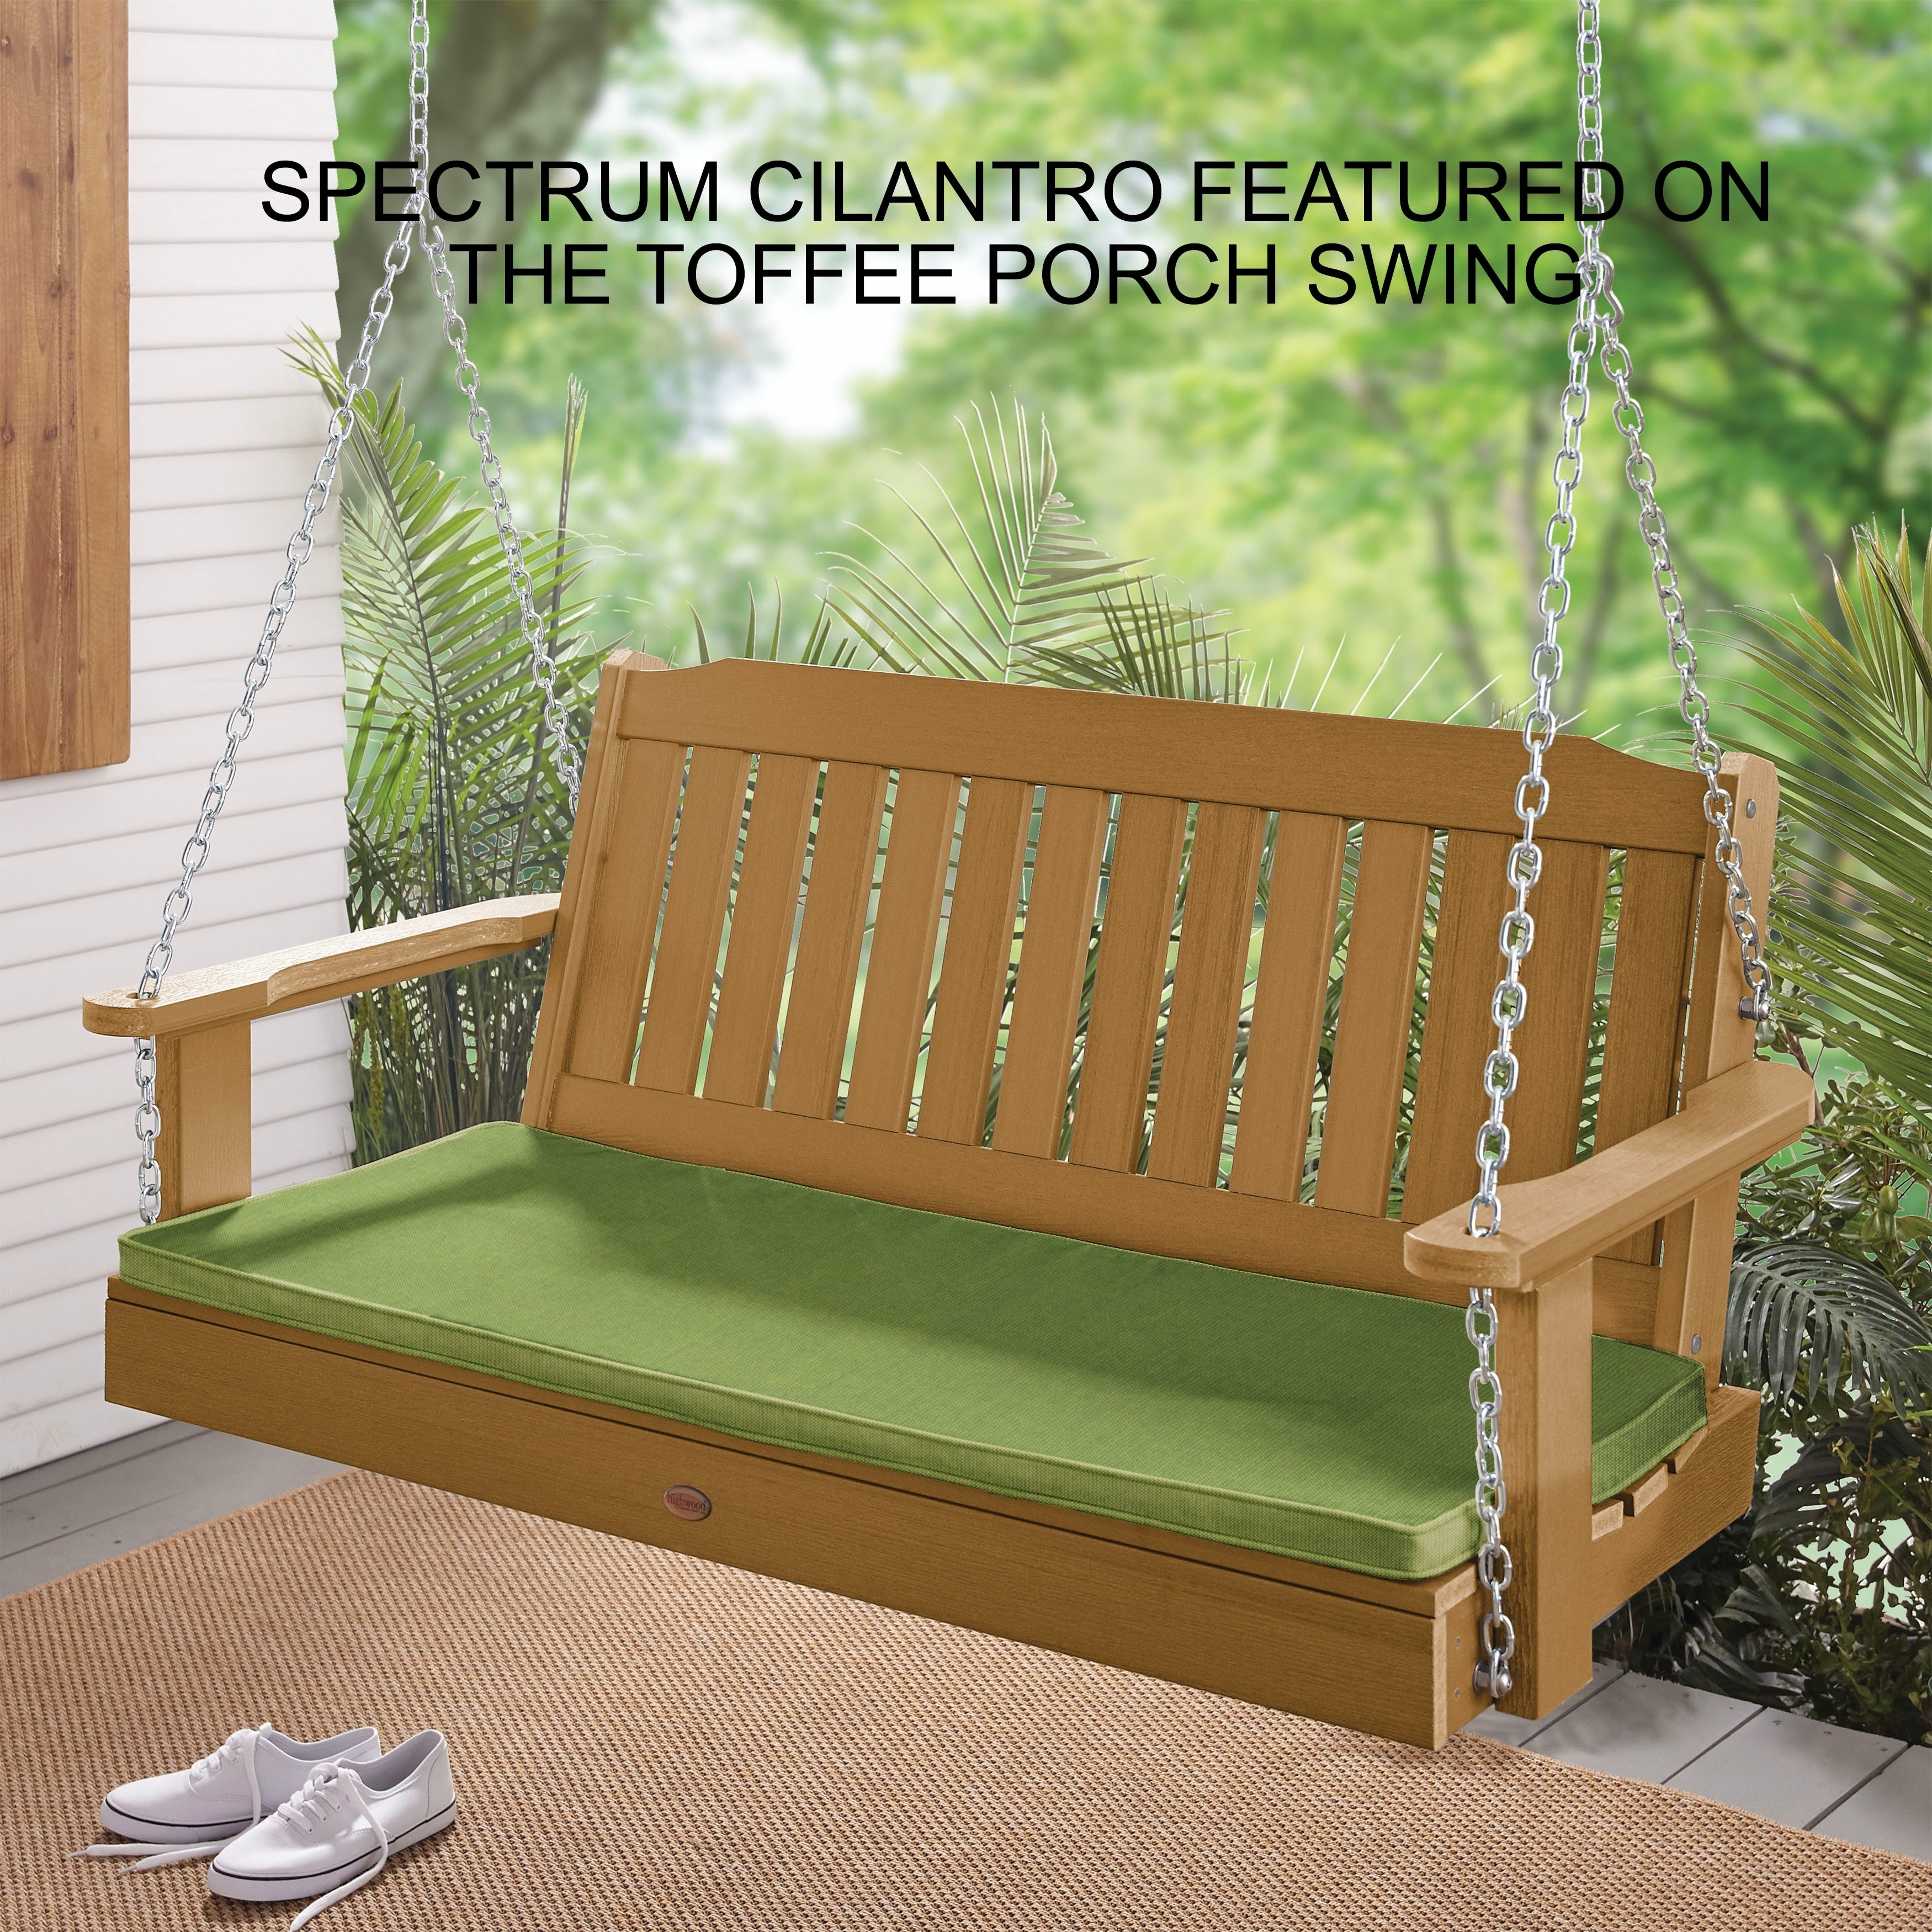 Lehigh Sunbrella Corded Outdoor Porch Swing Cushion 47 In W X 18 D Free Shipping Today 22045560